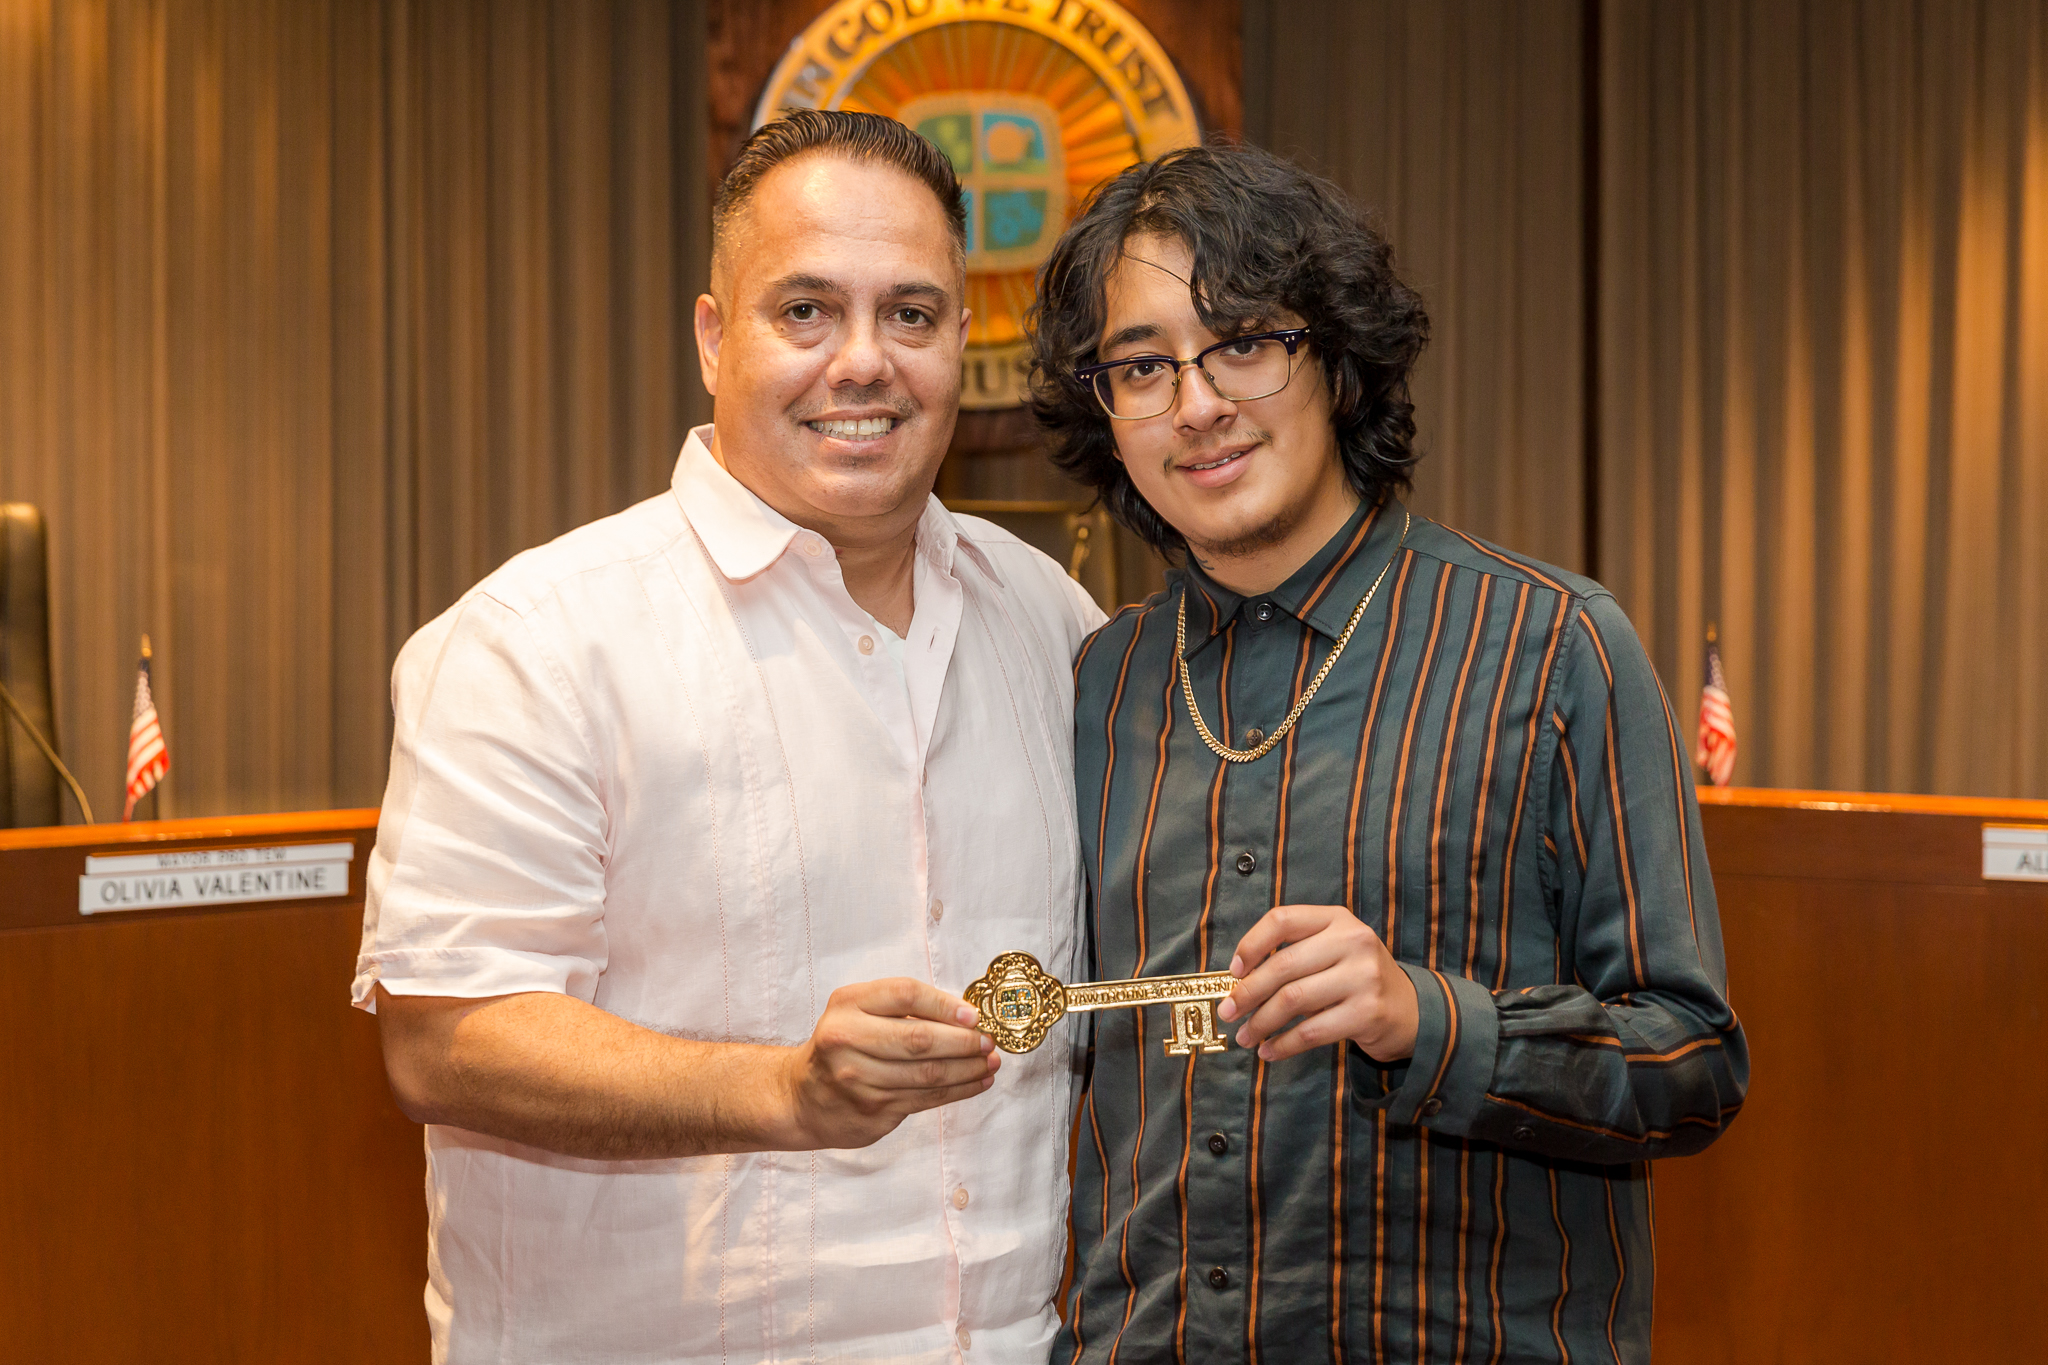 Mayor Vargas and Cuco with Key to the City